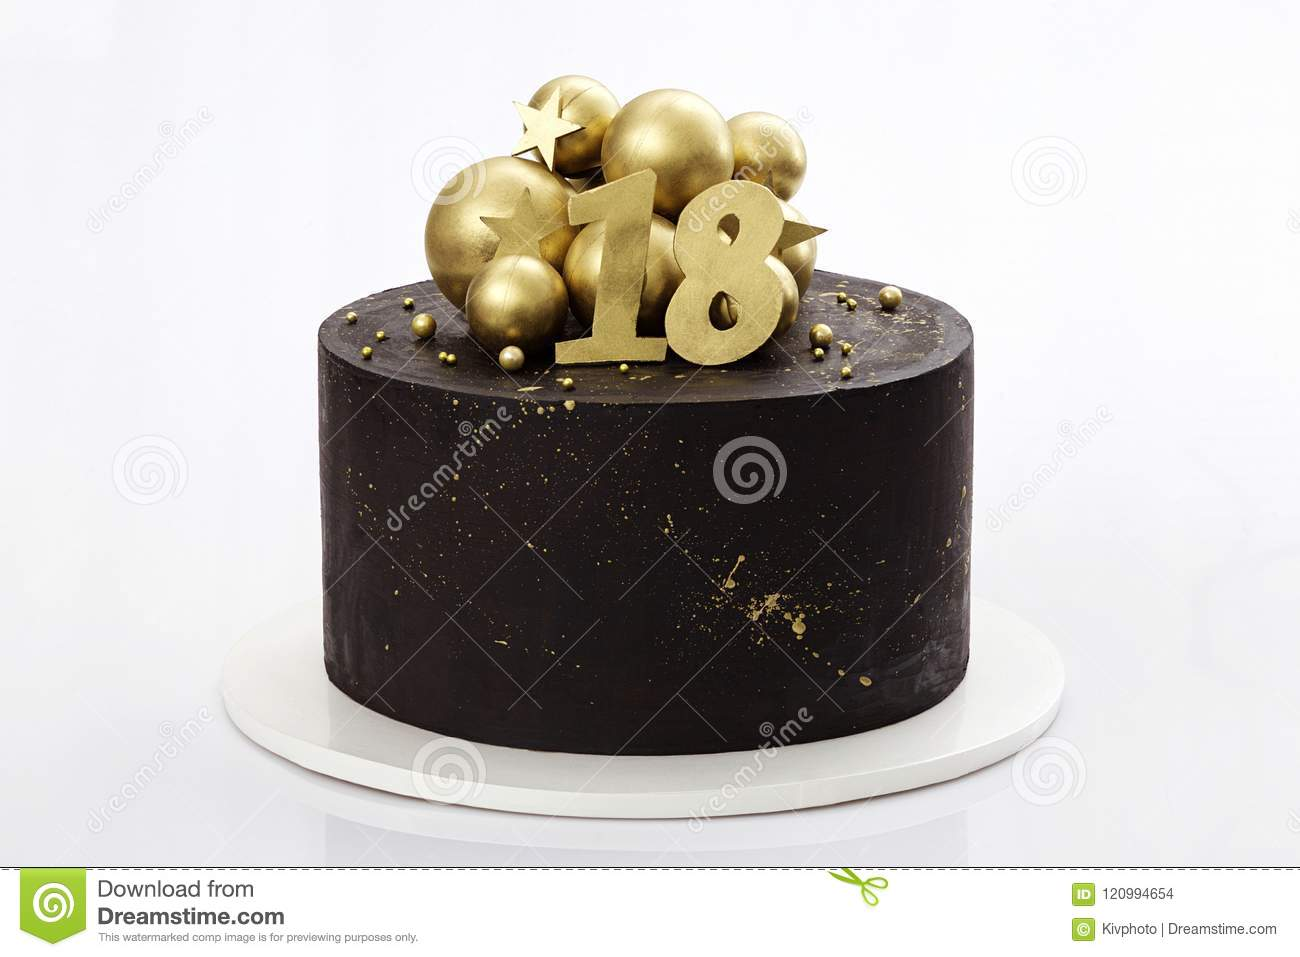 The Birthday Cake Is 18 Years Old Stock Photo Image Of Backery